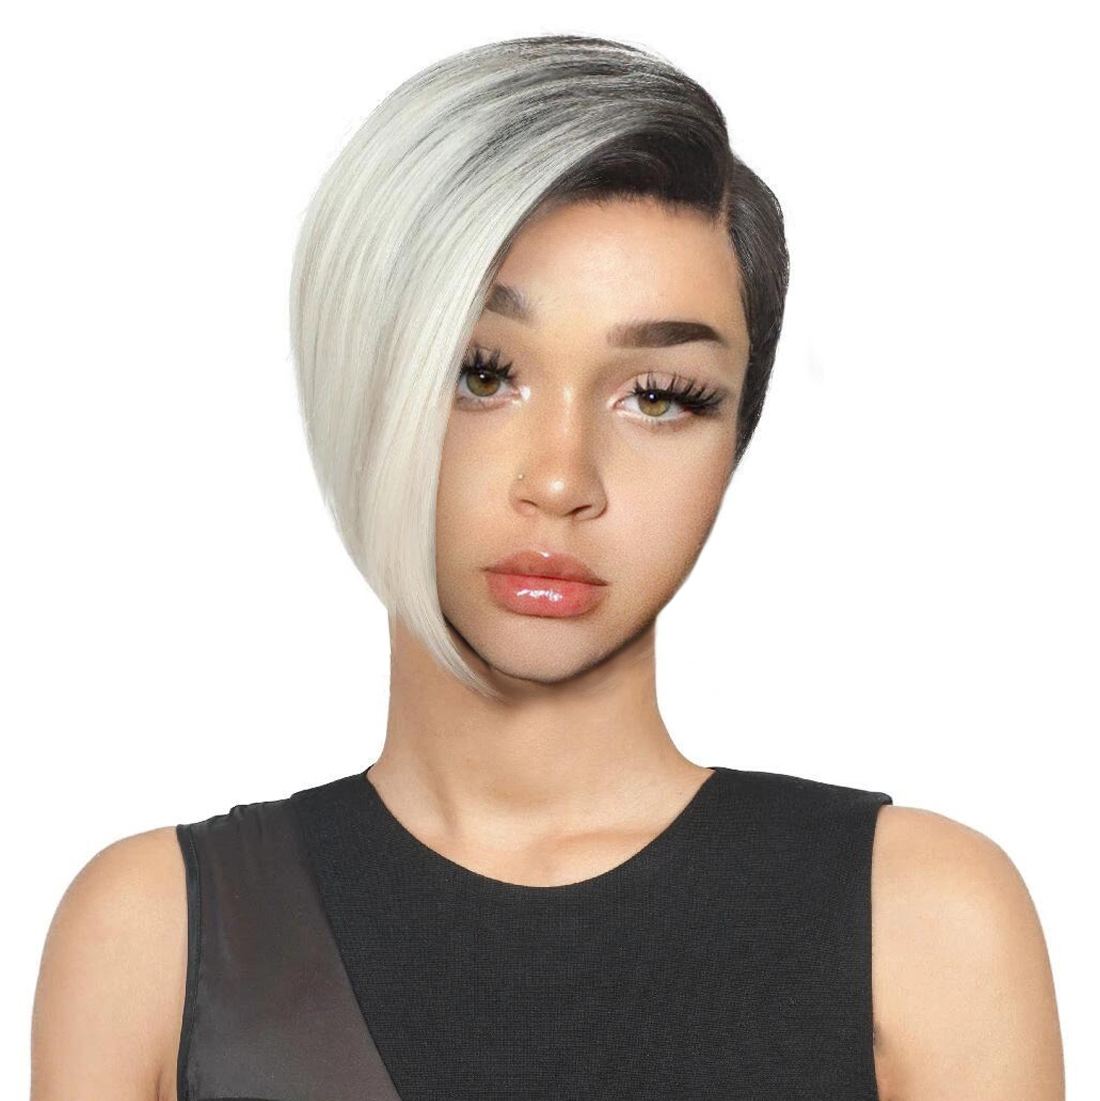 Short Black Wigs For Women Synthetic Hair Wigs Female Heat Resistant Fiber Color Ombre Grey Wig Cosplay image